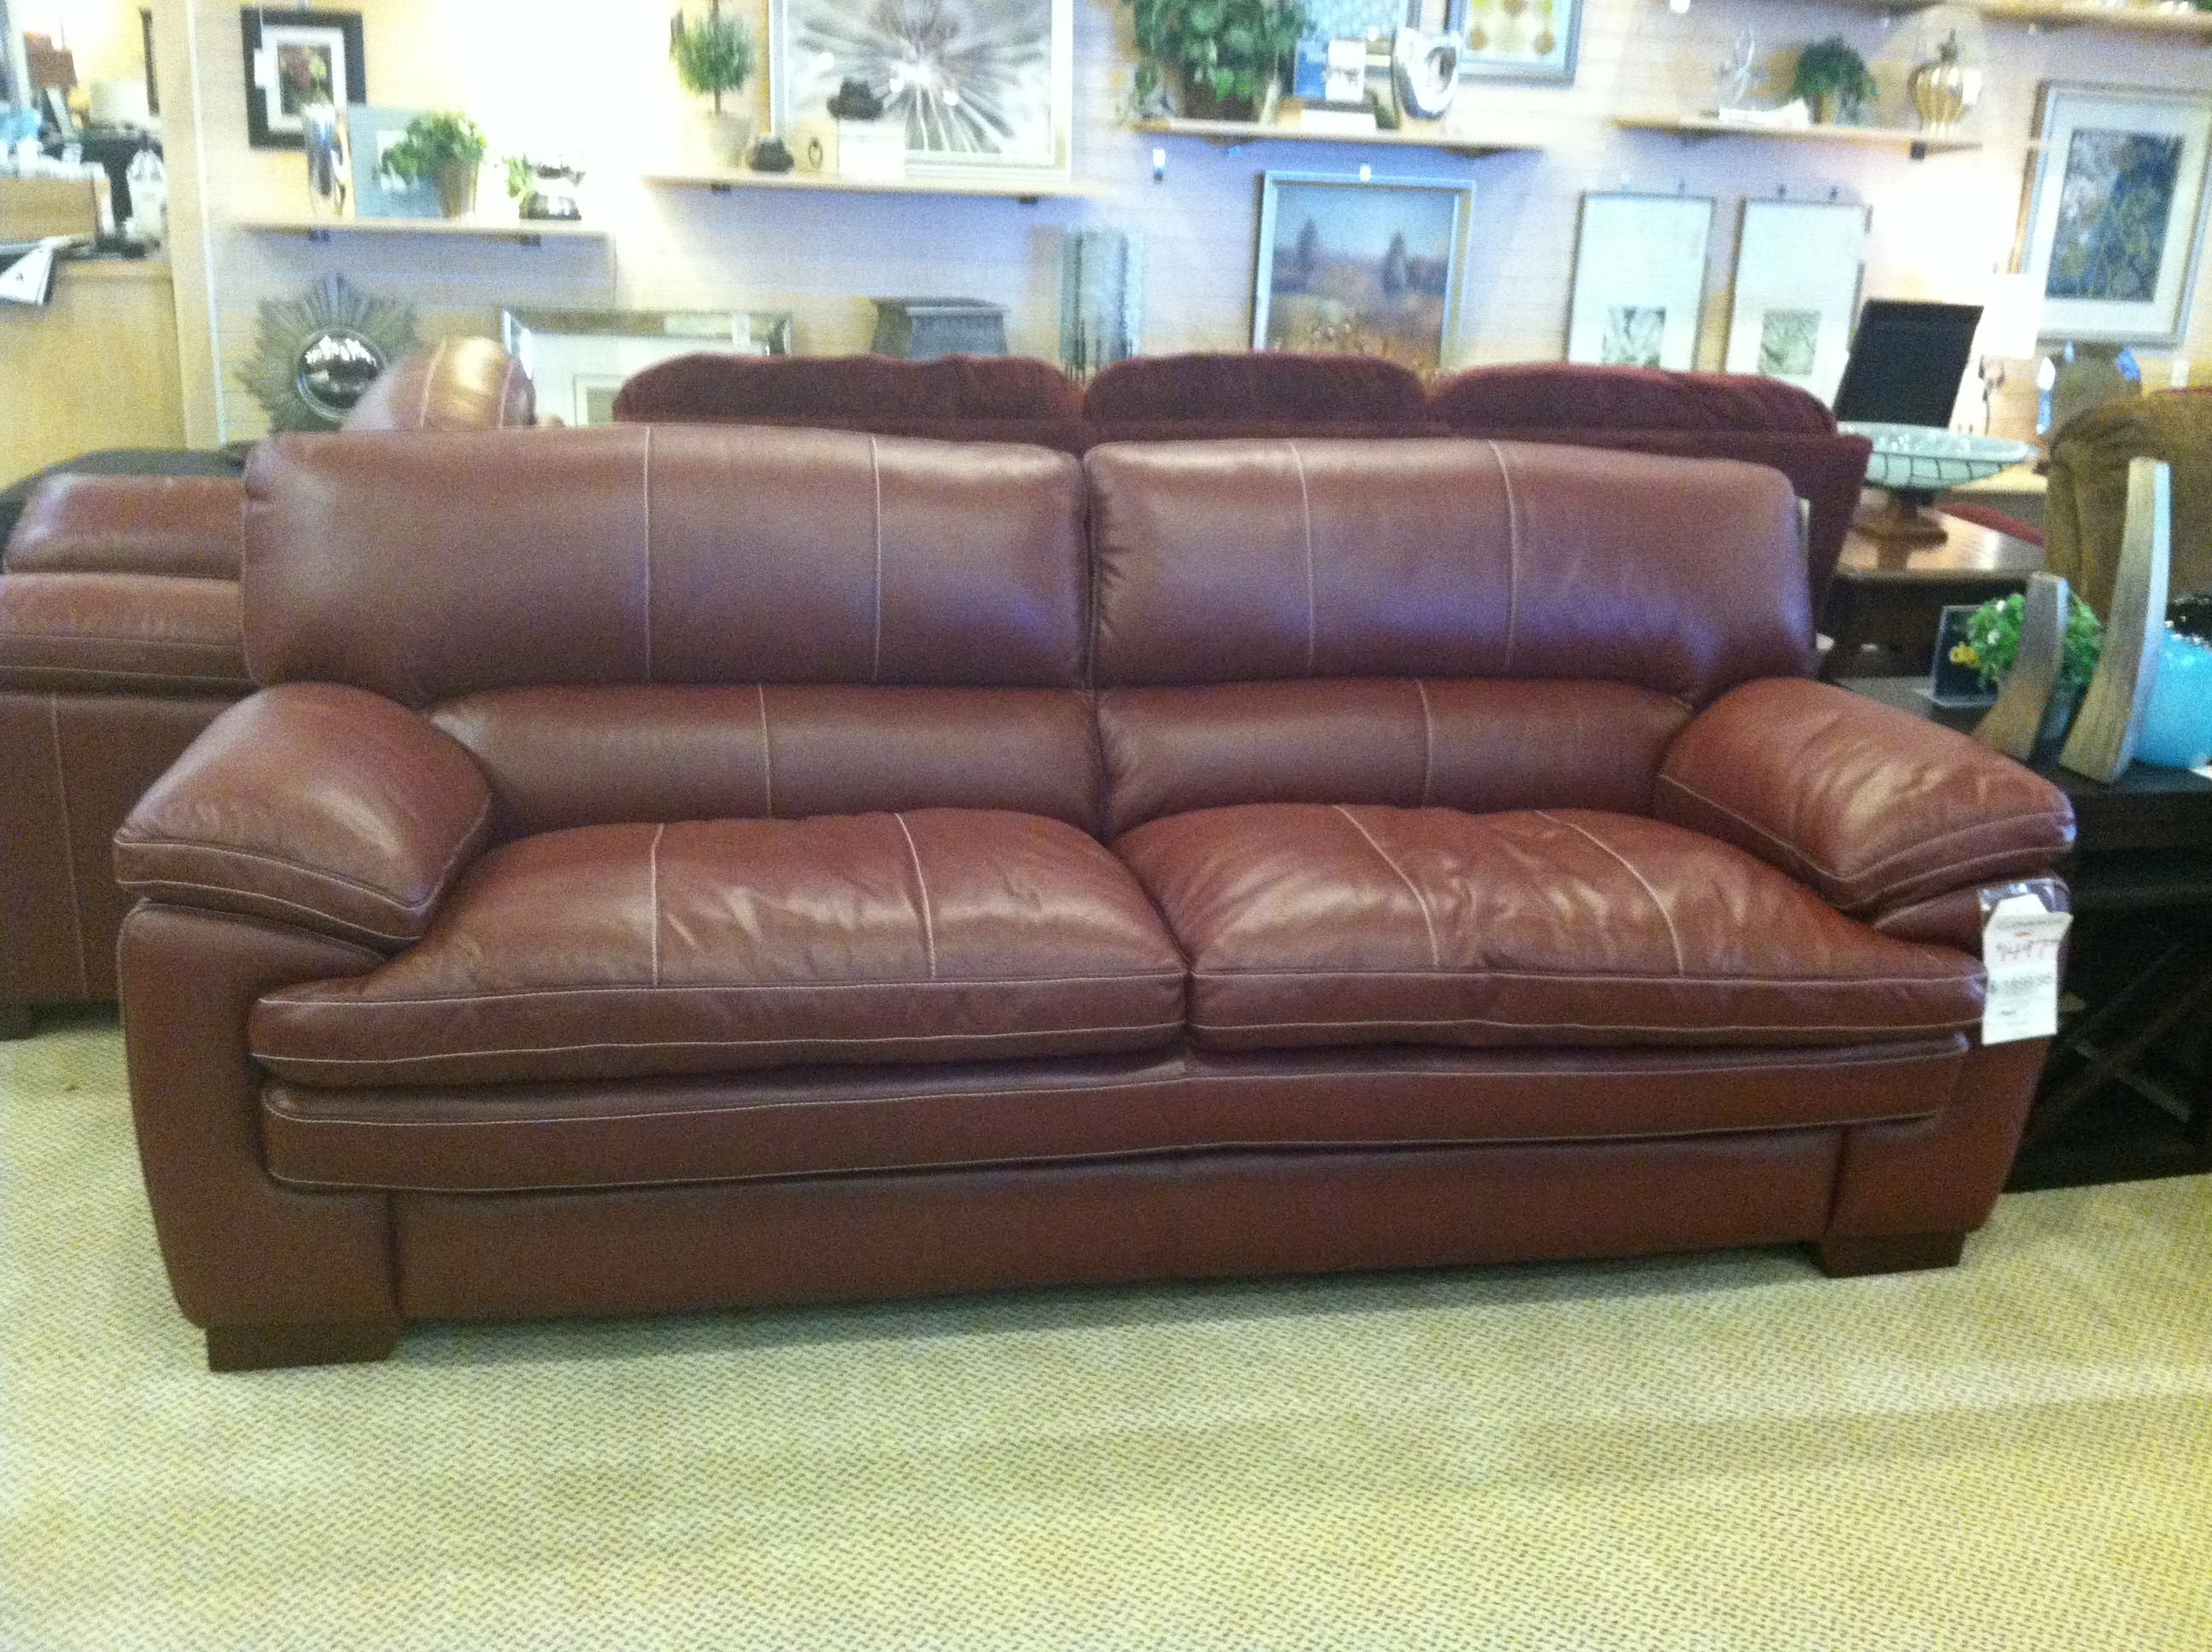 Lazy Boy Leather Sofa Brown Leather Living Room Furniture